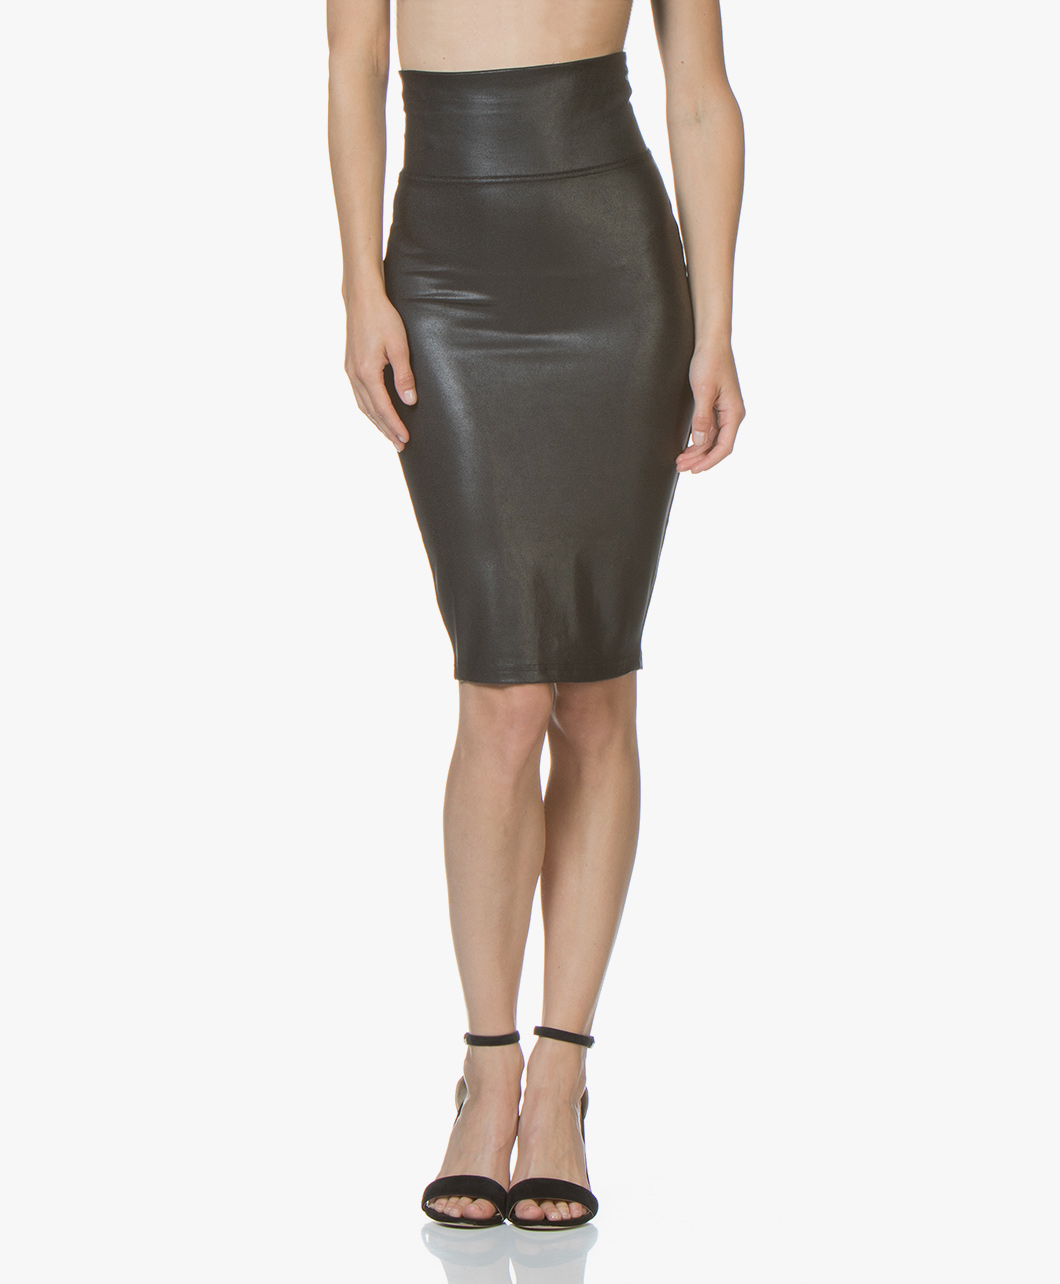 fd88e9ddcd574 SPANX® Faux Leather Pencil Skirt - Very Black - spx 20190r 99990 - very